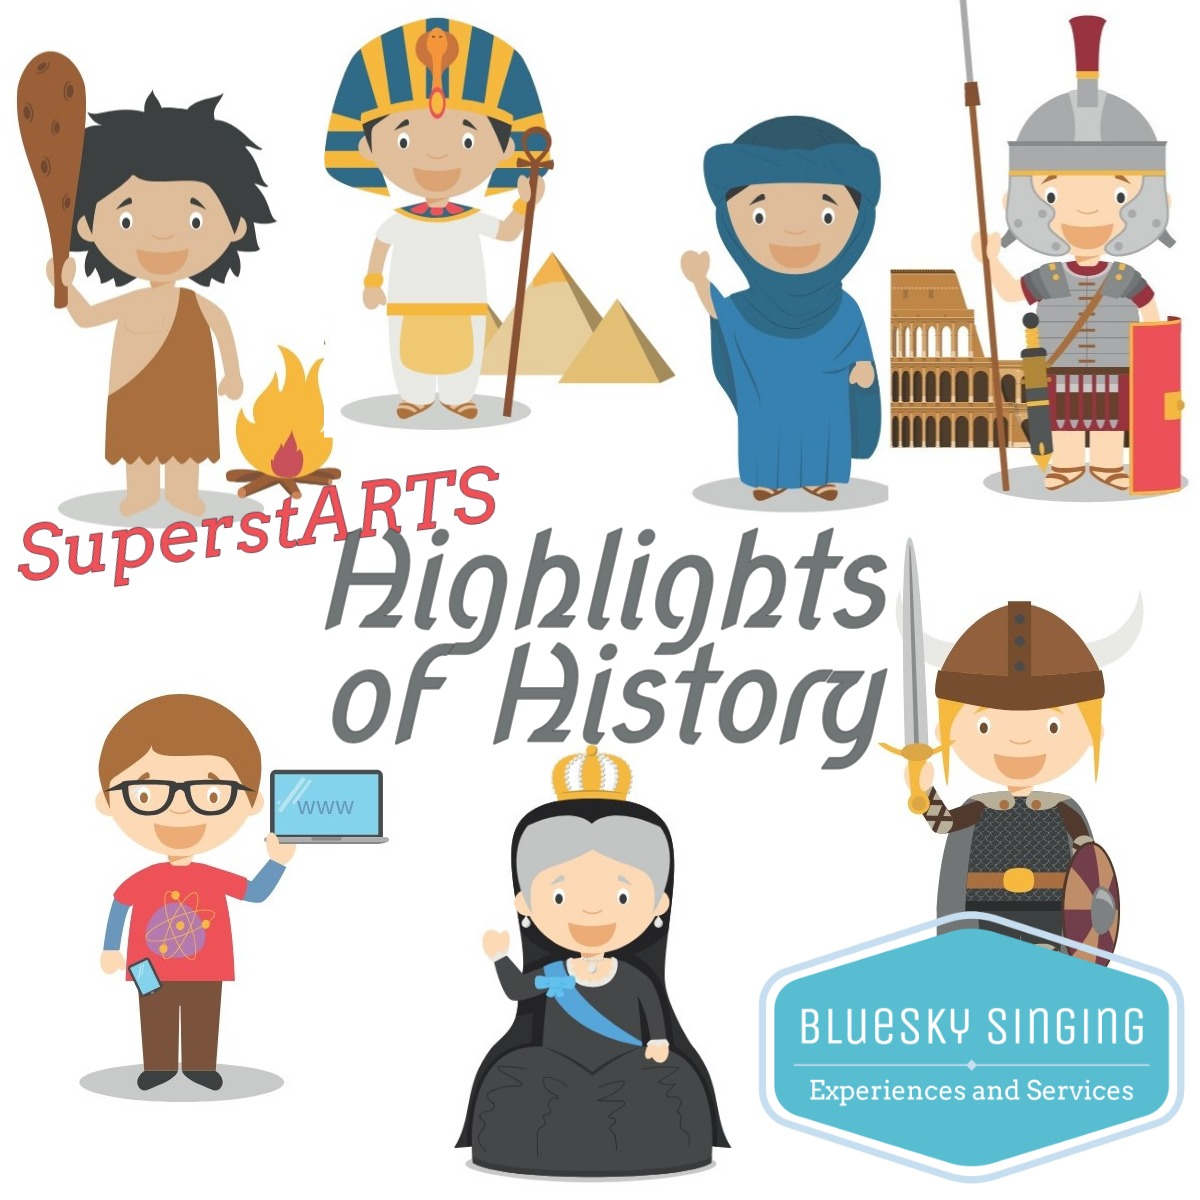 · For Juniors: Highlights of History is our current SuperstARTS topic which will see classes singing and sharing about the Stone Age through to the Victorians. Costumes at the ready! Your KS2 classes will each receive a singing workshop ahead of the Experience date.